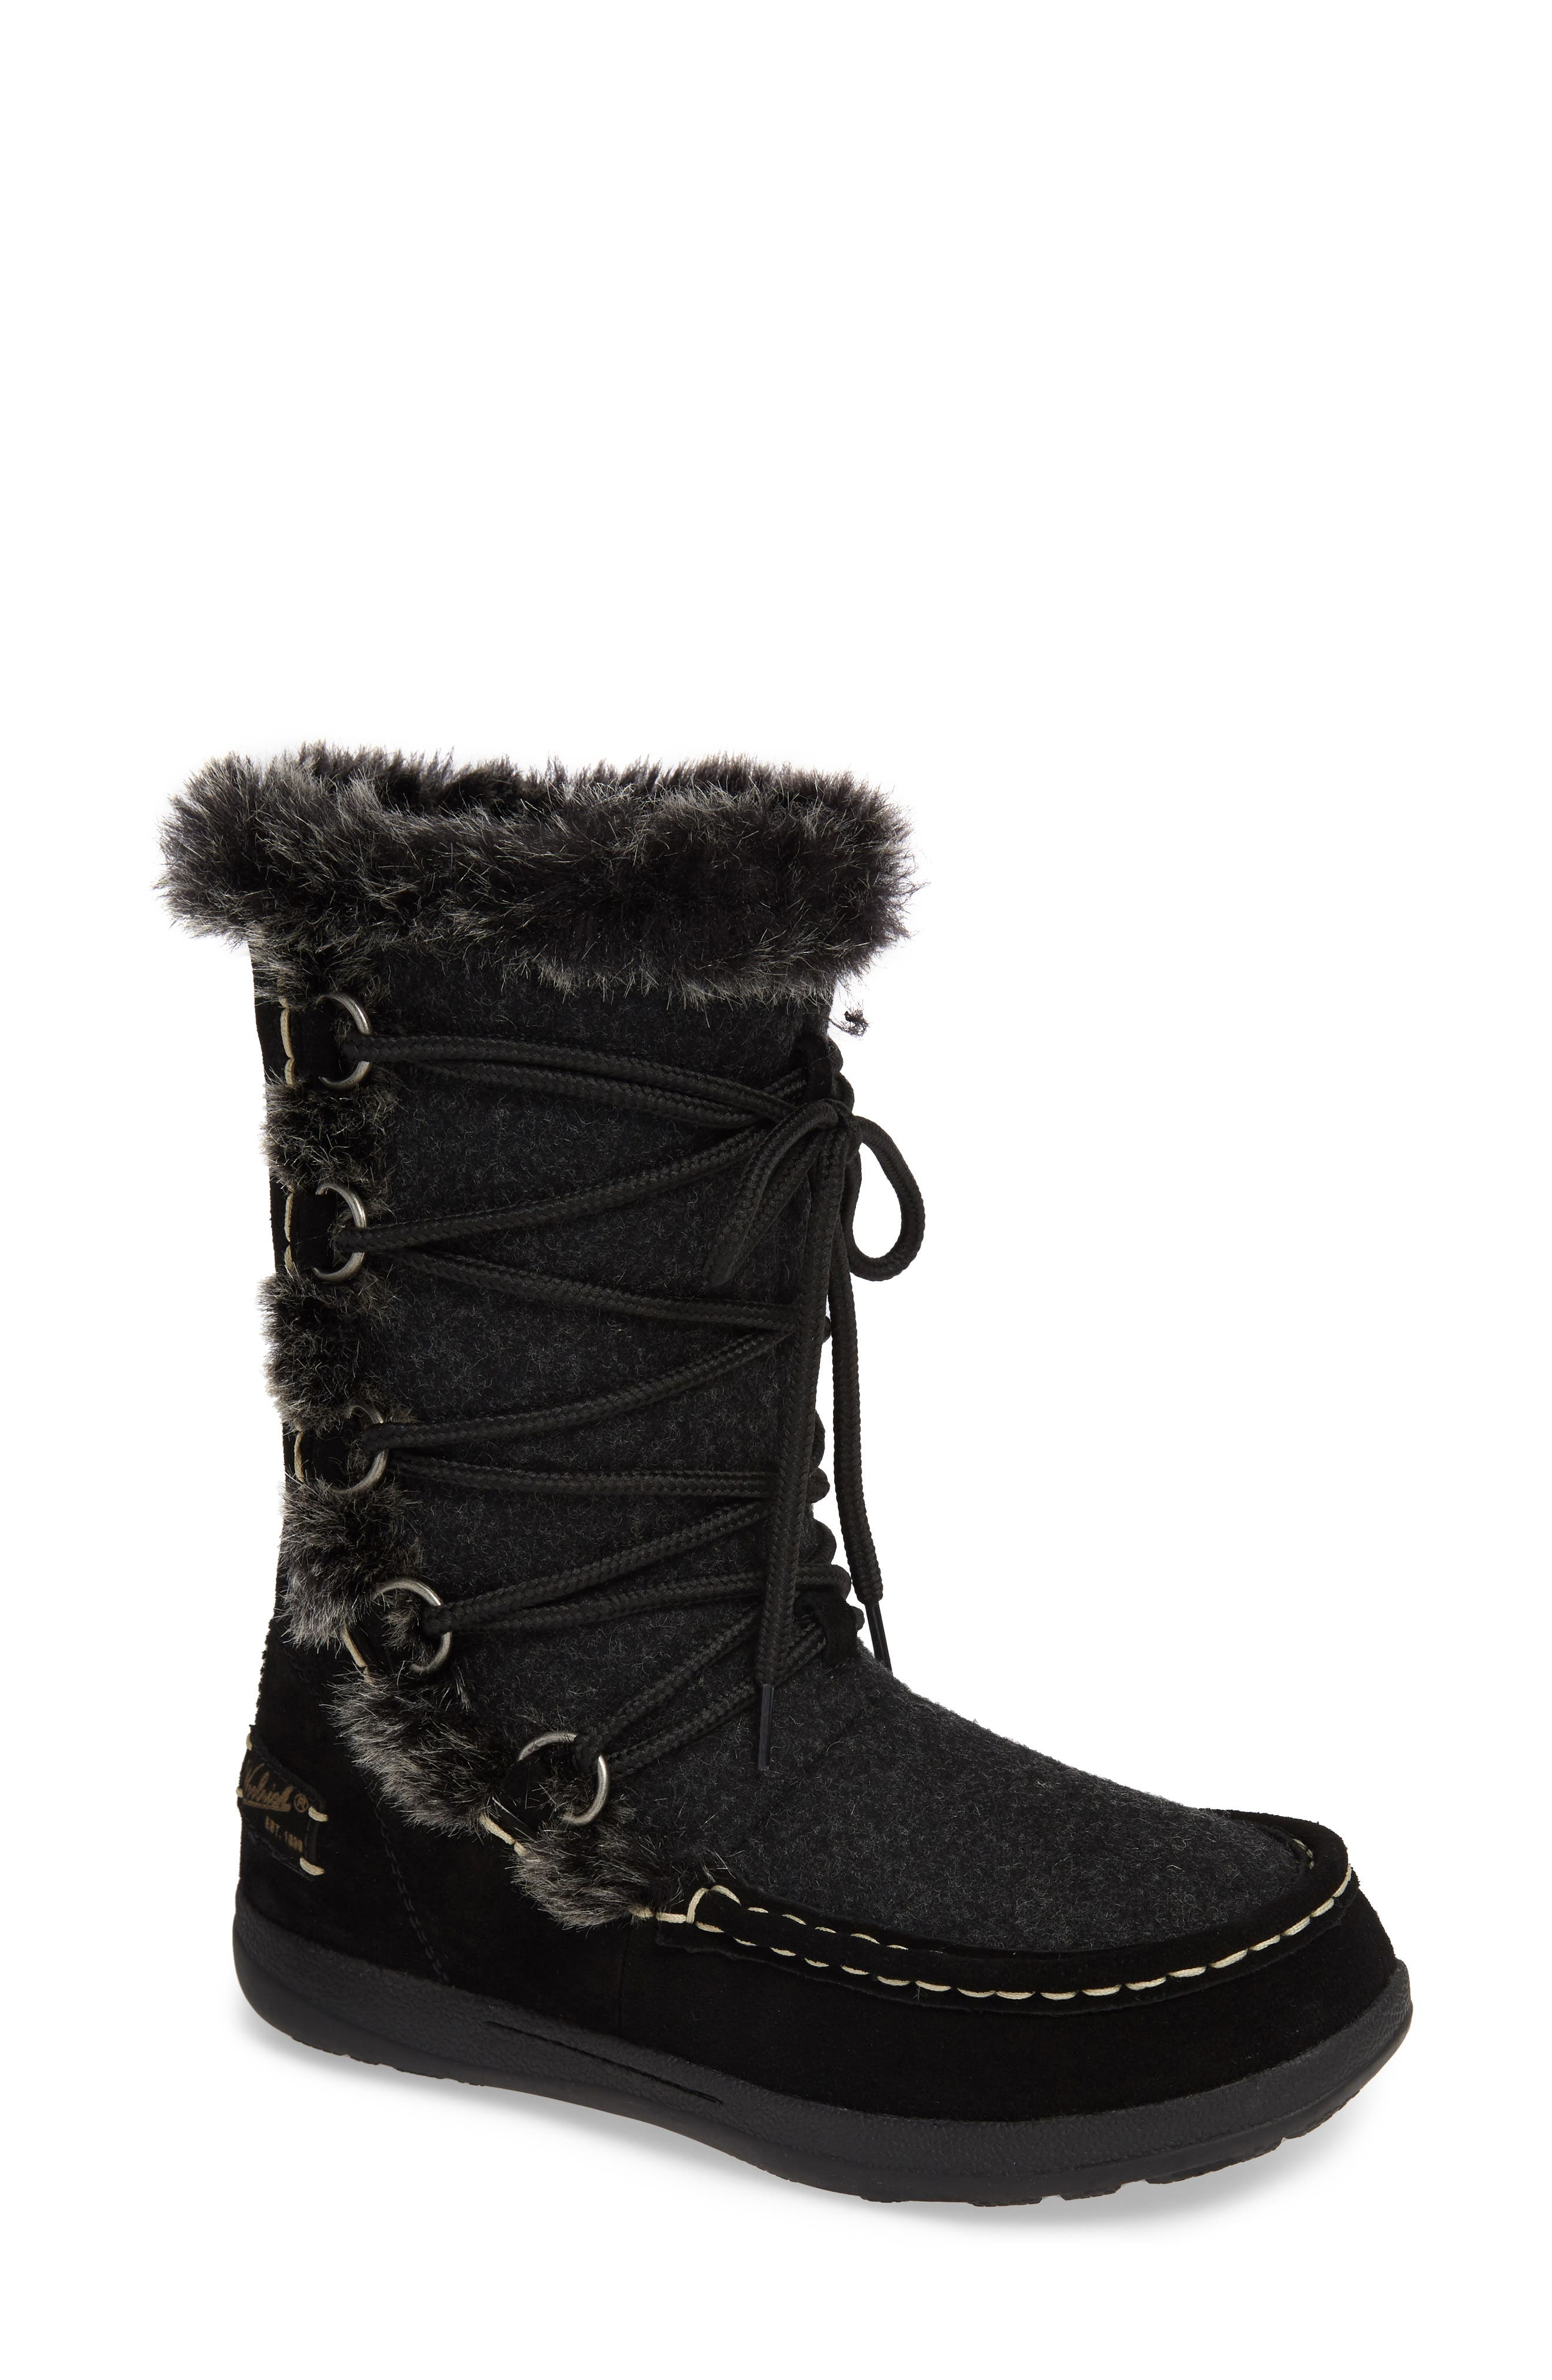 Lace Up Bootie,                             Main thumbnail 1, color,                             BLACK WOOL